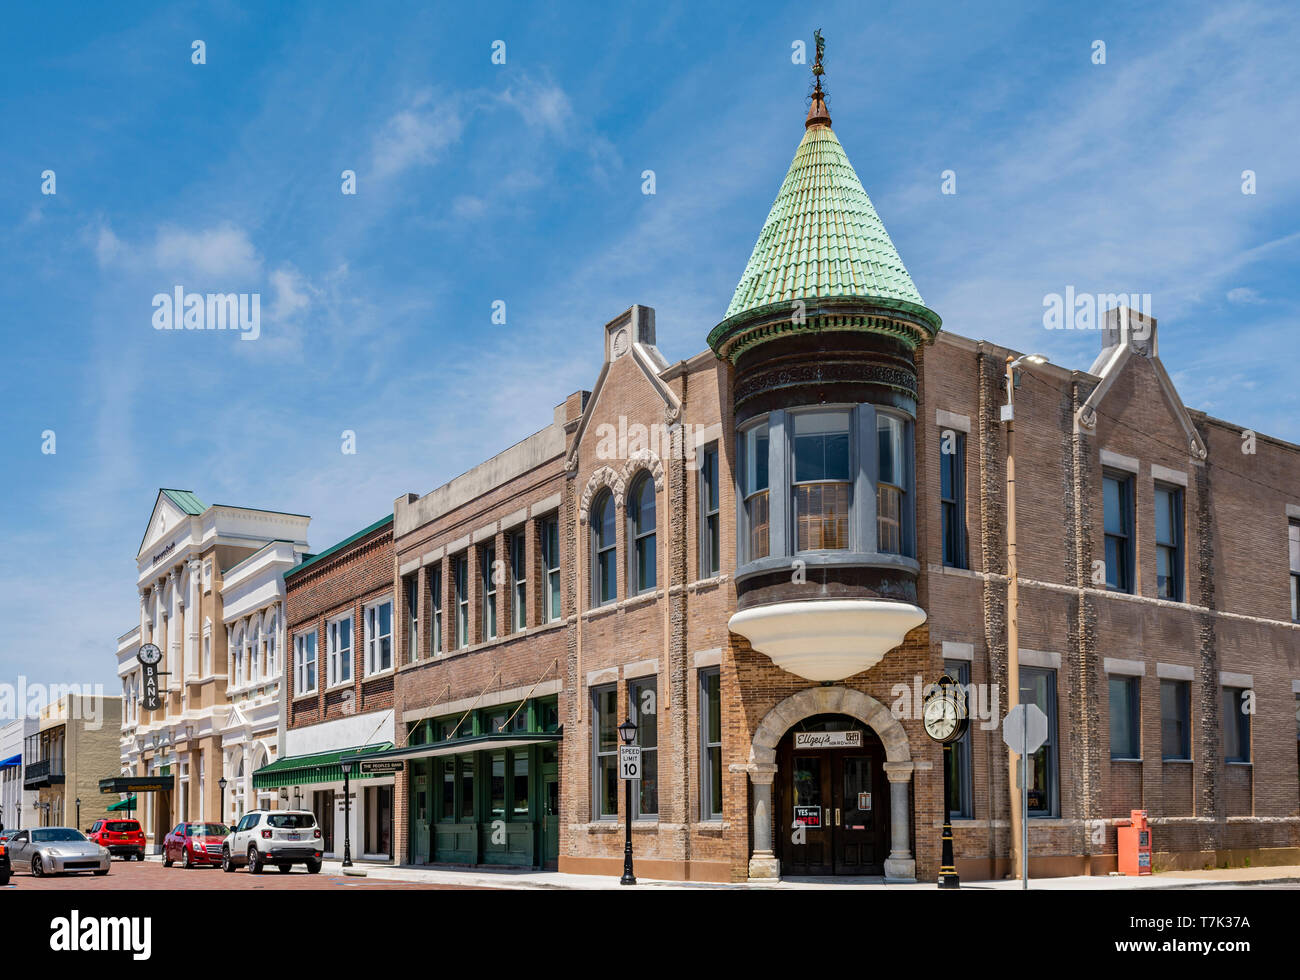 Biloxi Mississippi Usa The Original 1896 Peoples Bank Building At 750 Vieux Marche In The Historic Downtown Area